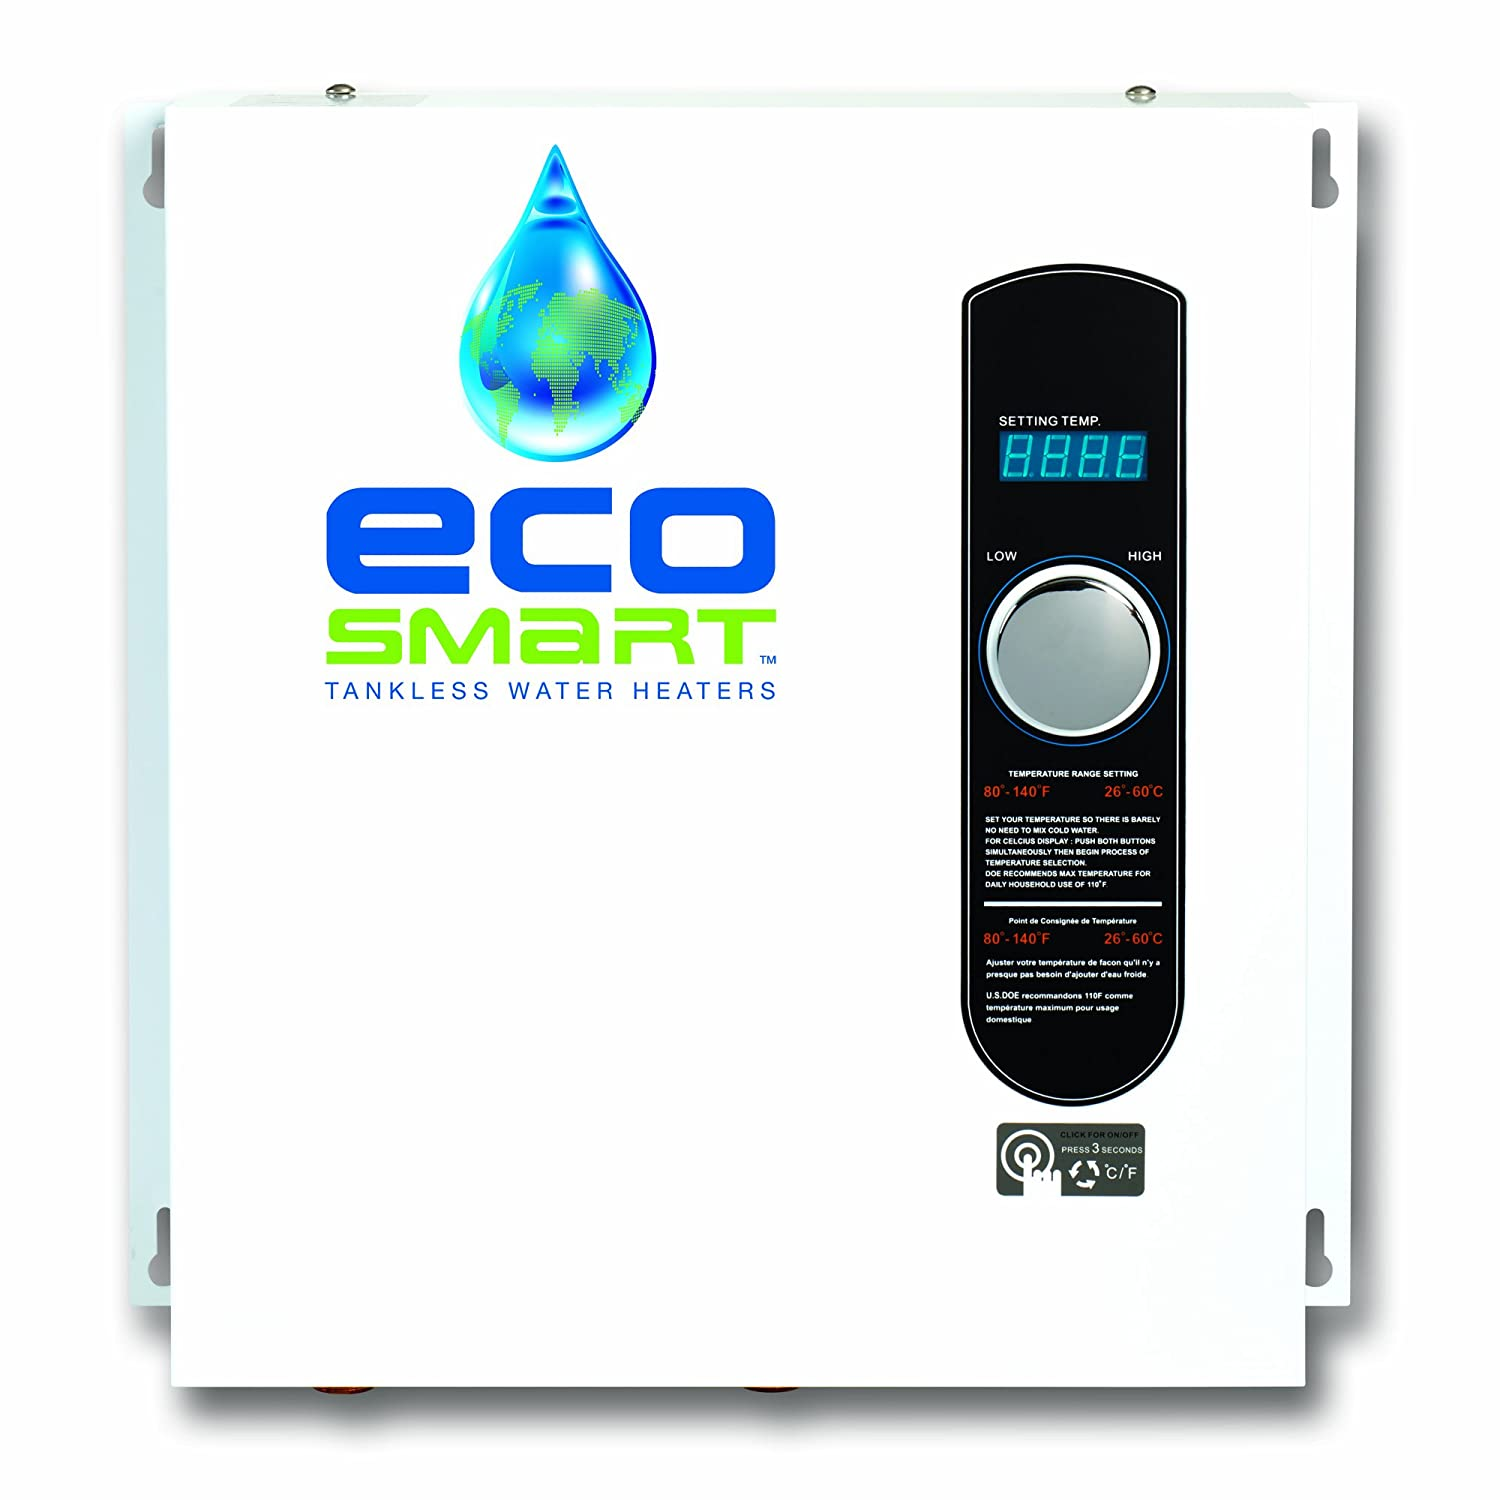 Ecosmart ECO 24 Tankless Water